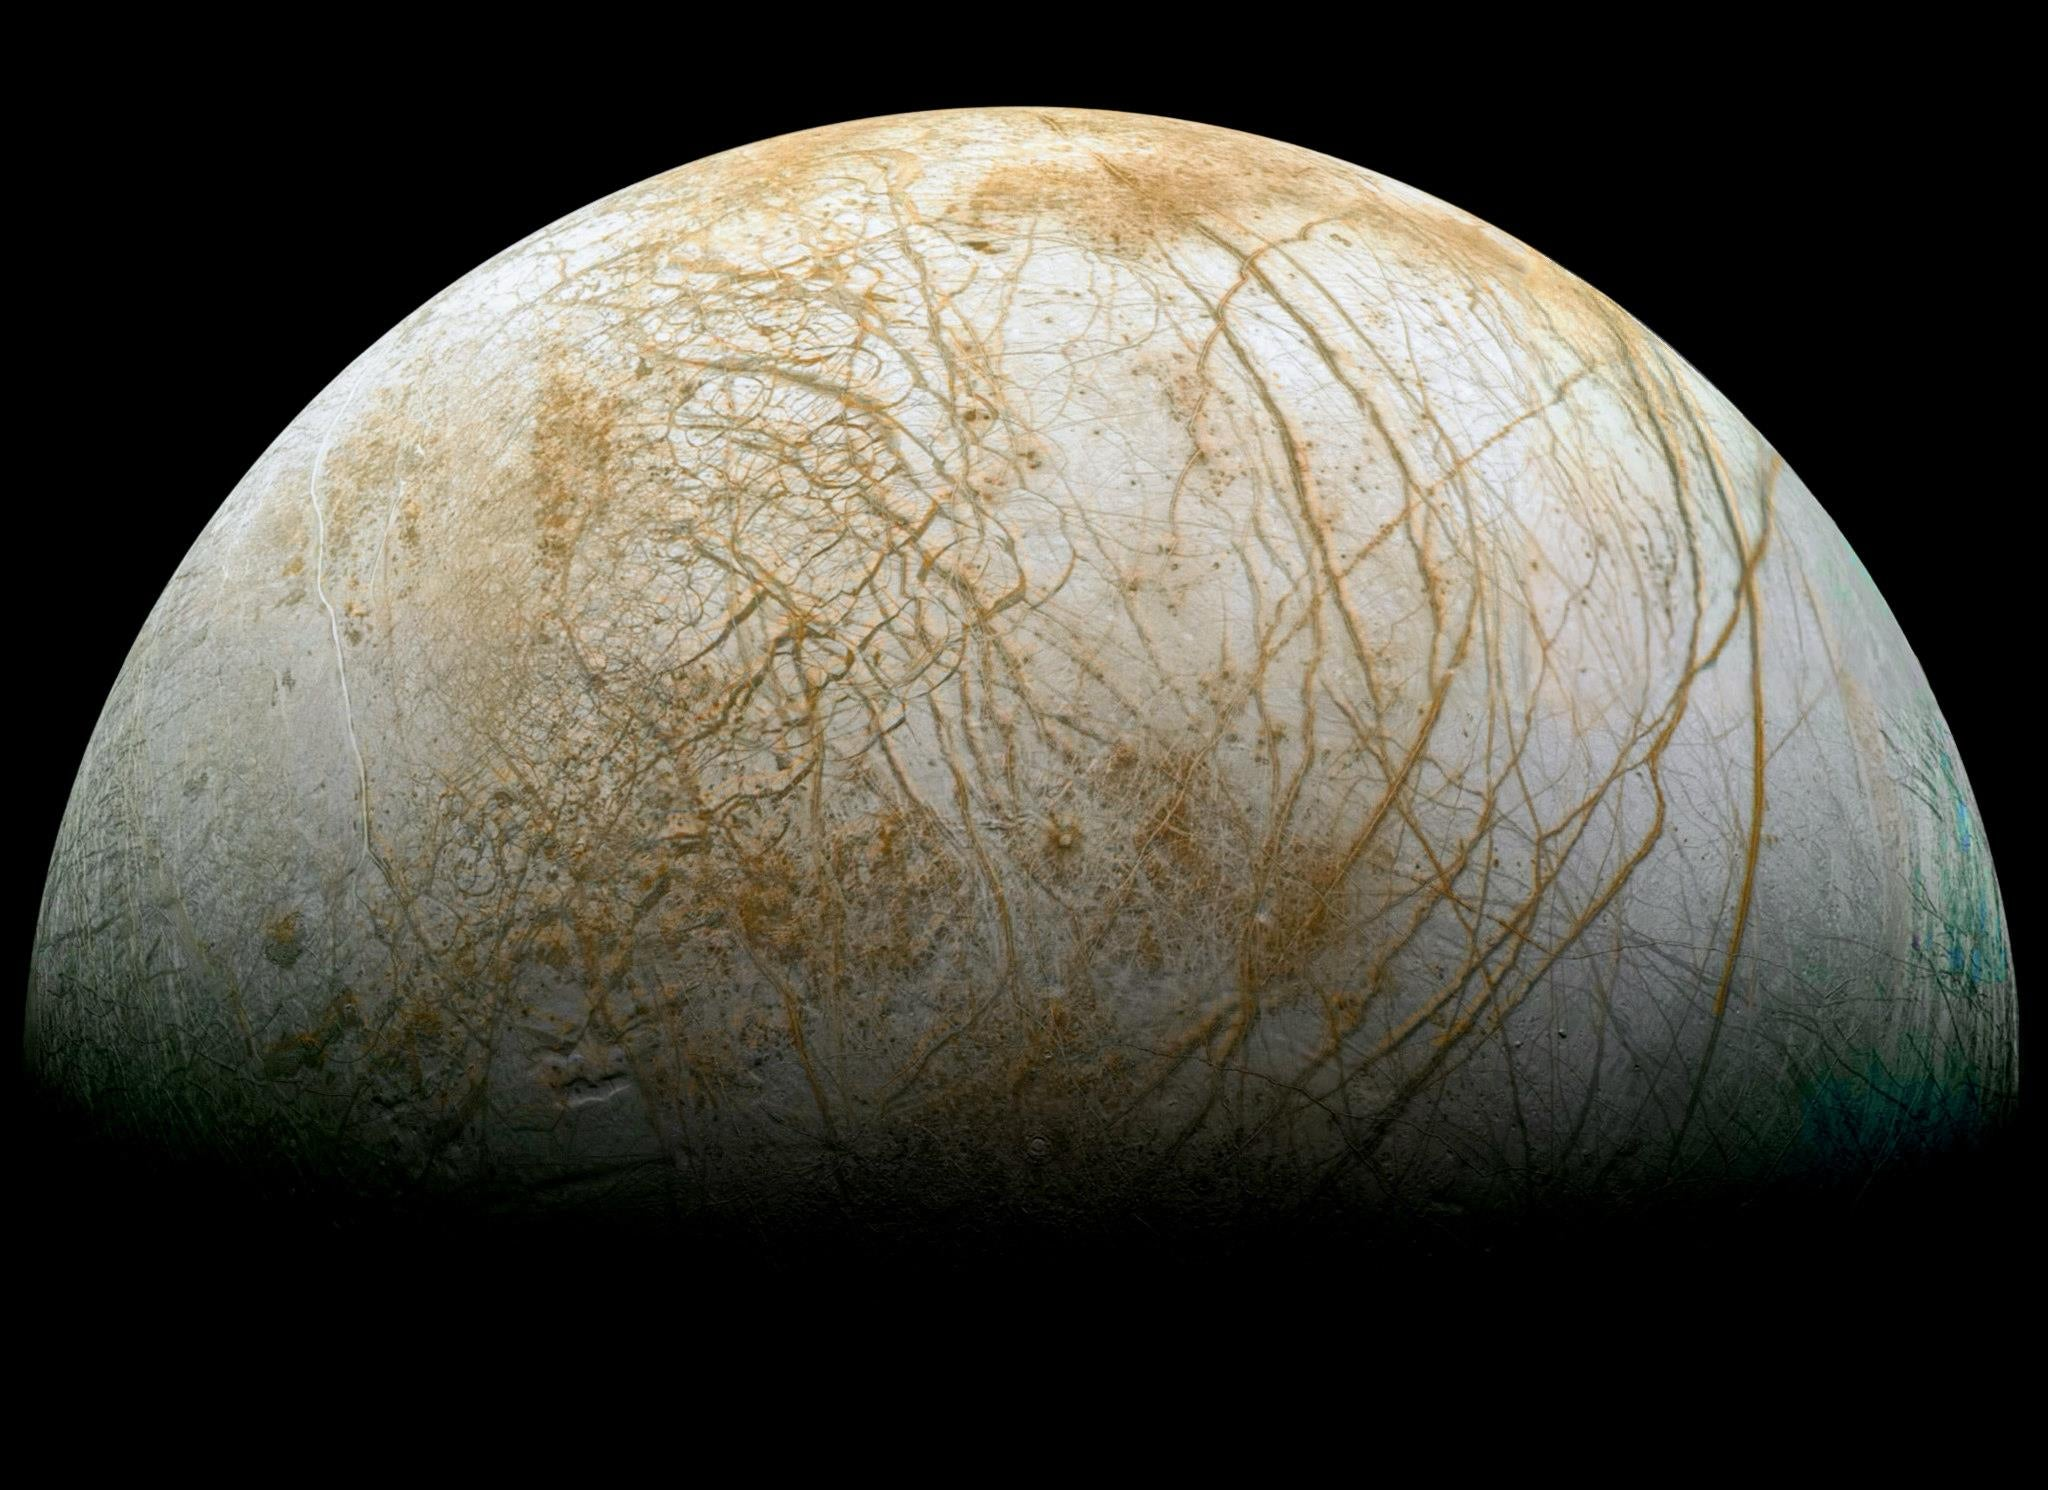 Nasa to hold announcement about potentially life-supporting ocean on Jupiter's moon, Europa